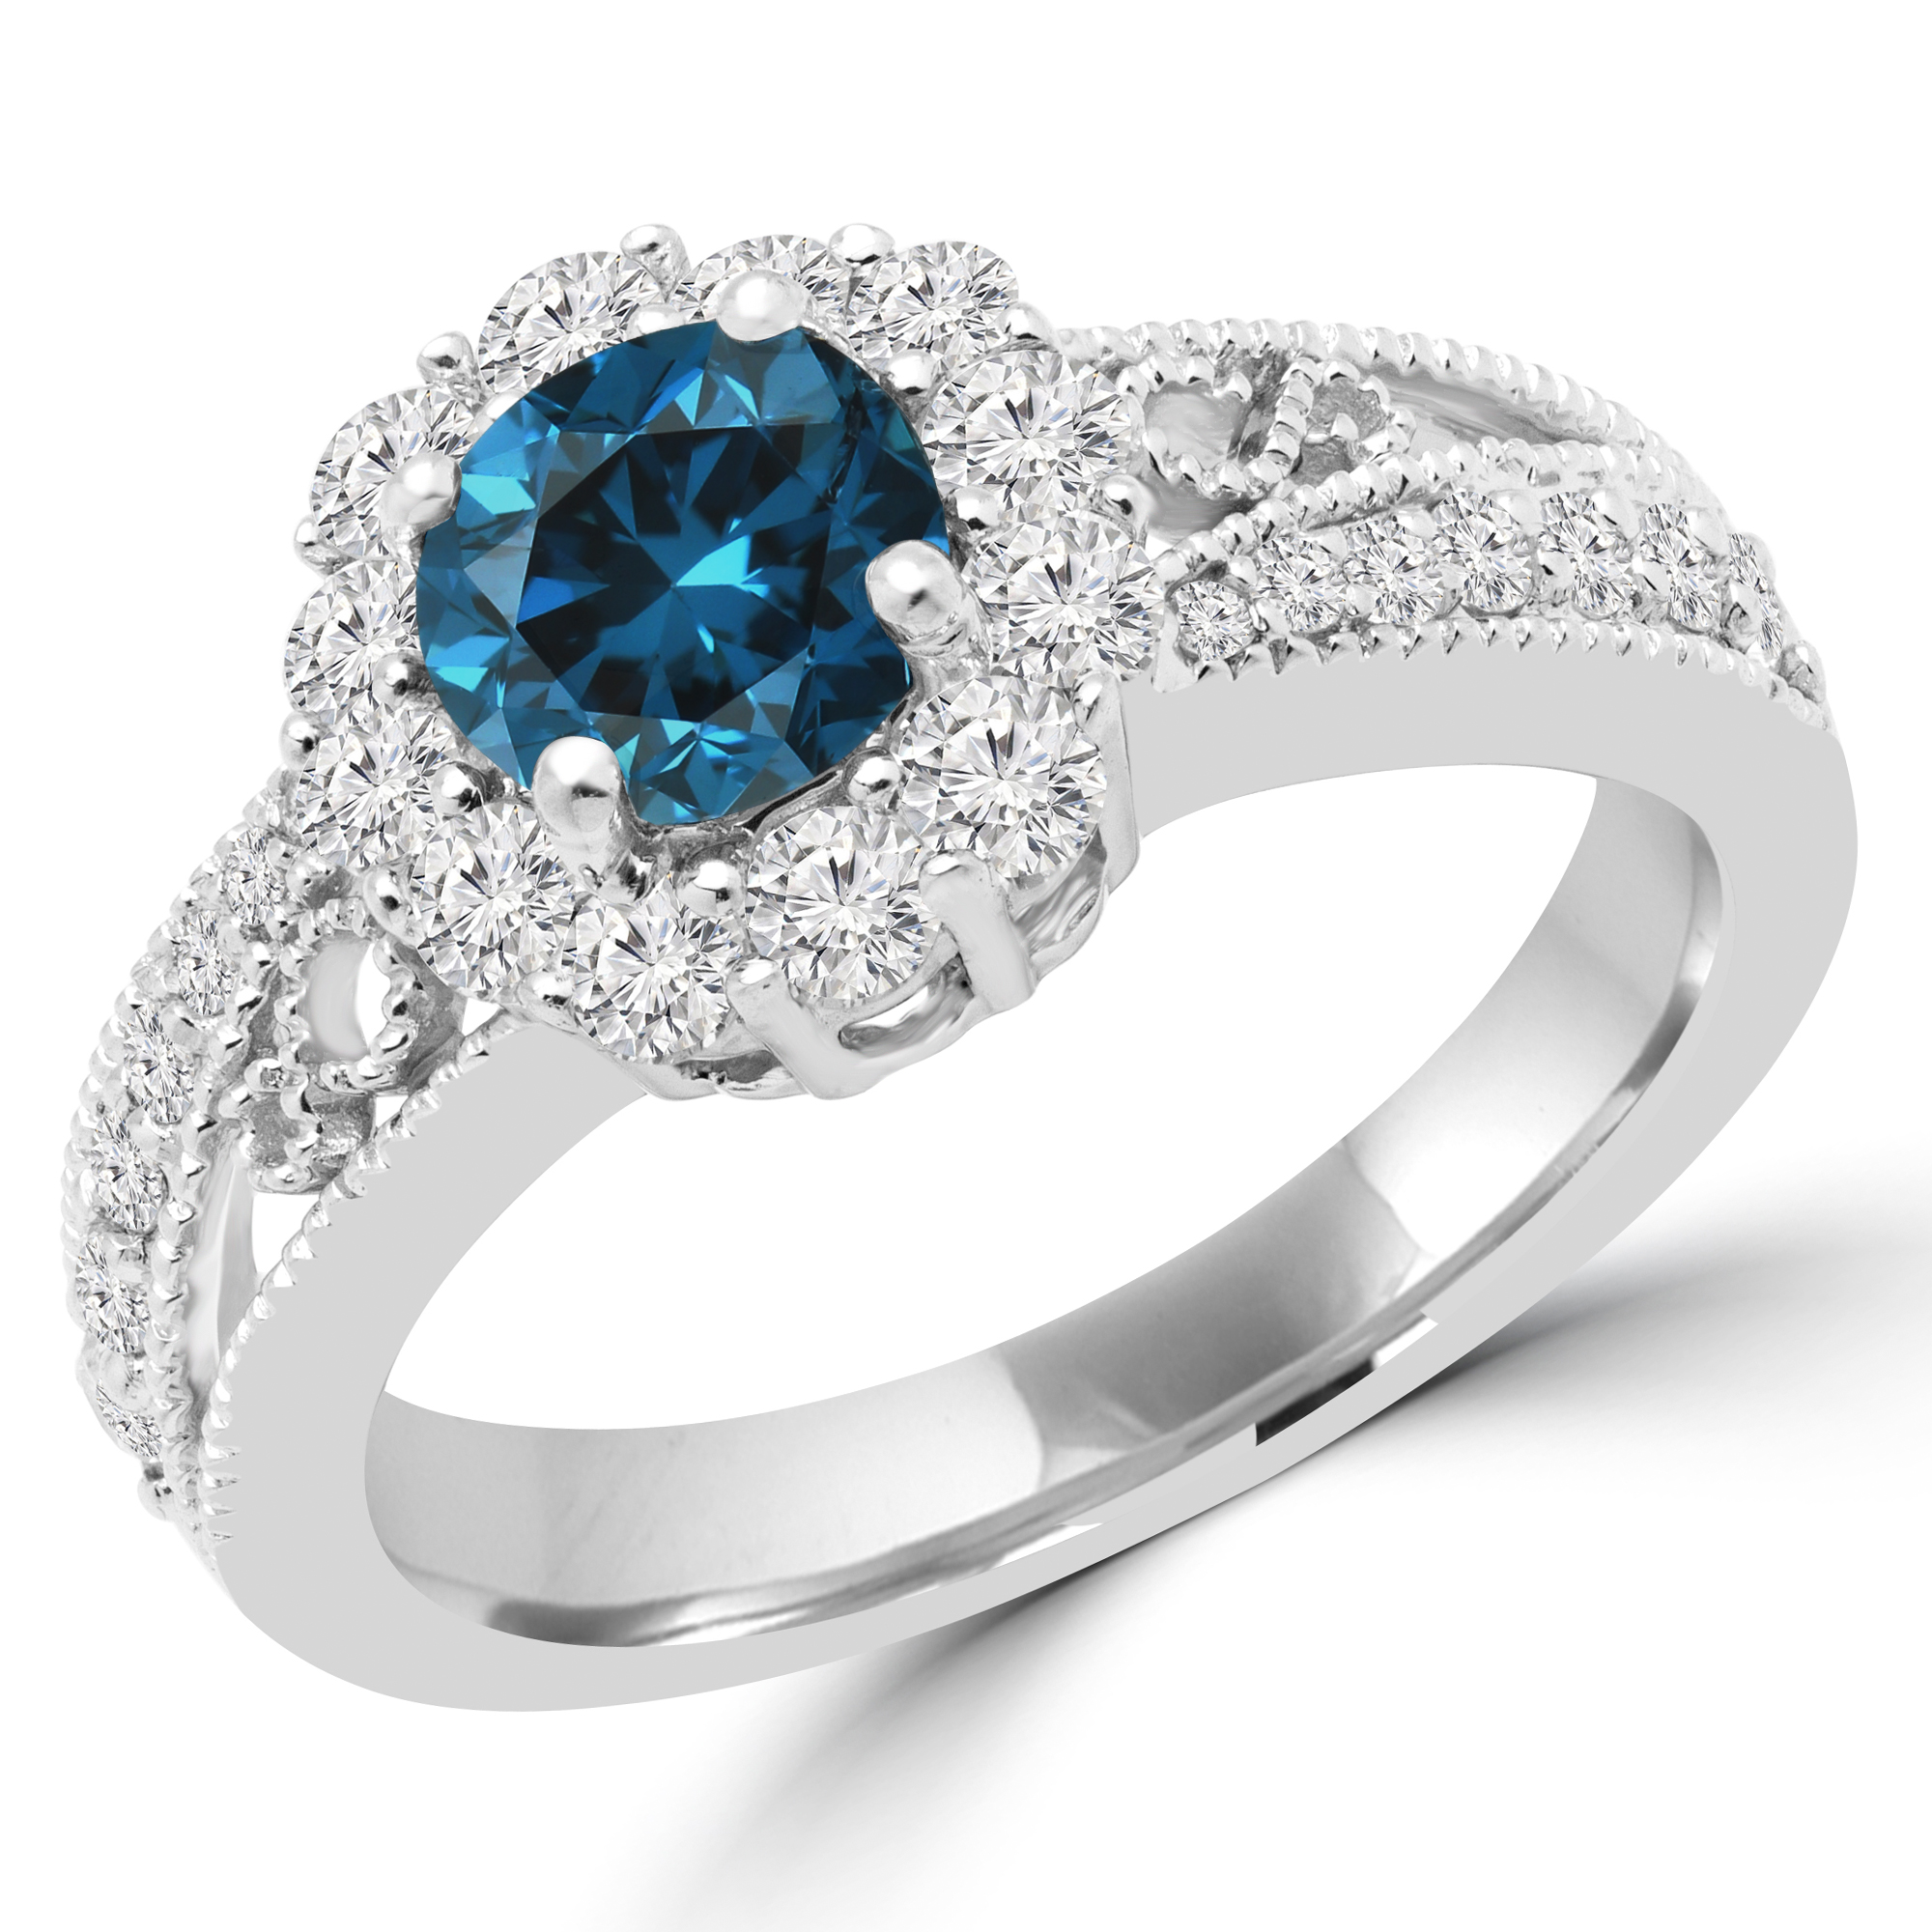 1 1/5 CTW Princess Blue Diamond Halo Engagement Ring in 14K White Gold (MD180127) - image 2 of 2